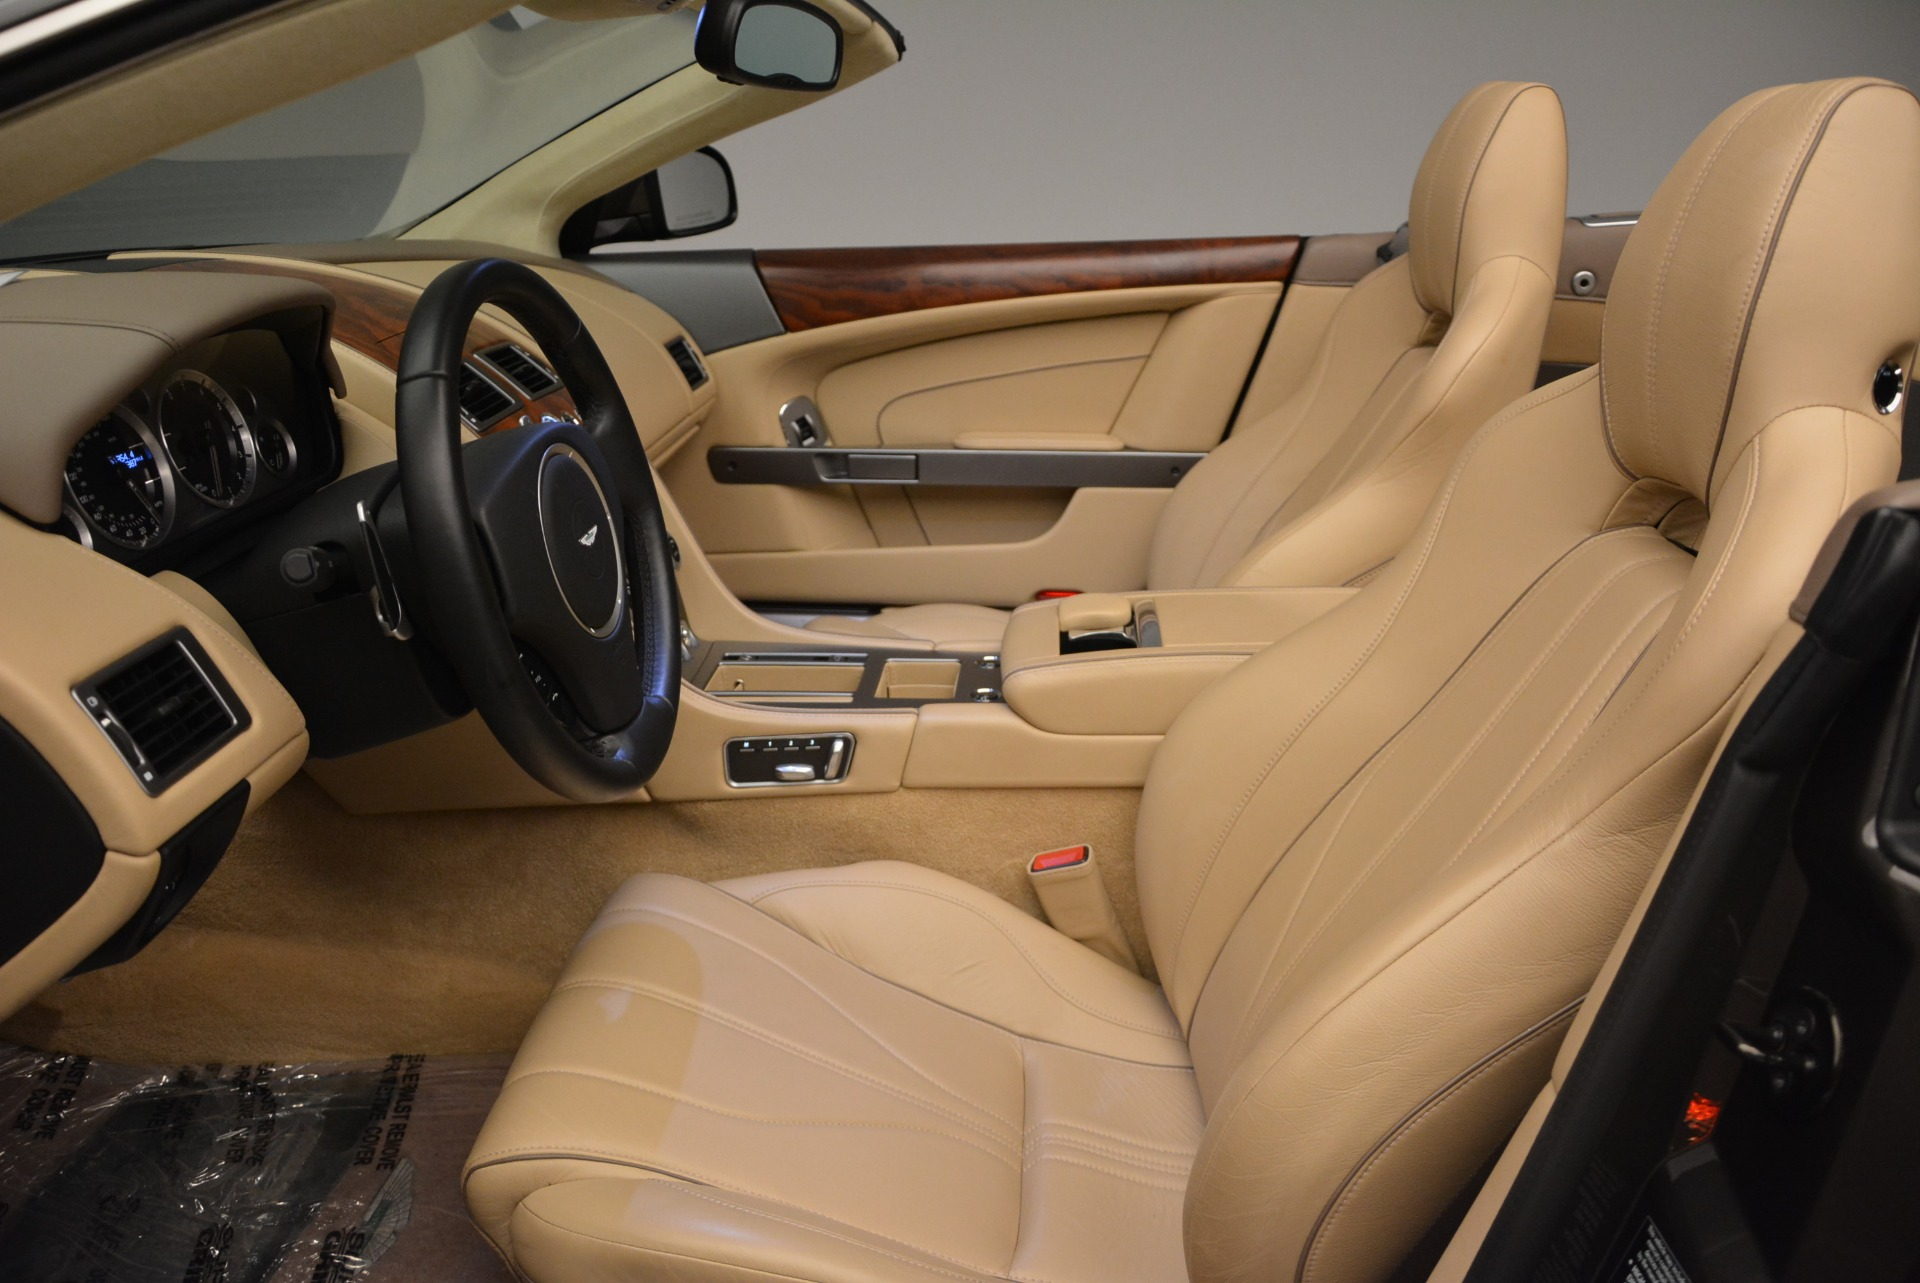 Used 2012 Aston Martin Virage Convertible For Sale 79900 In Greenwich, CT